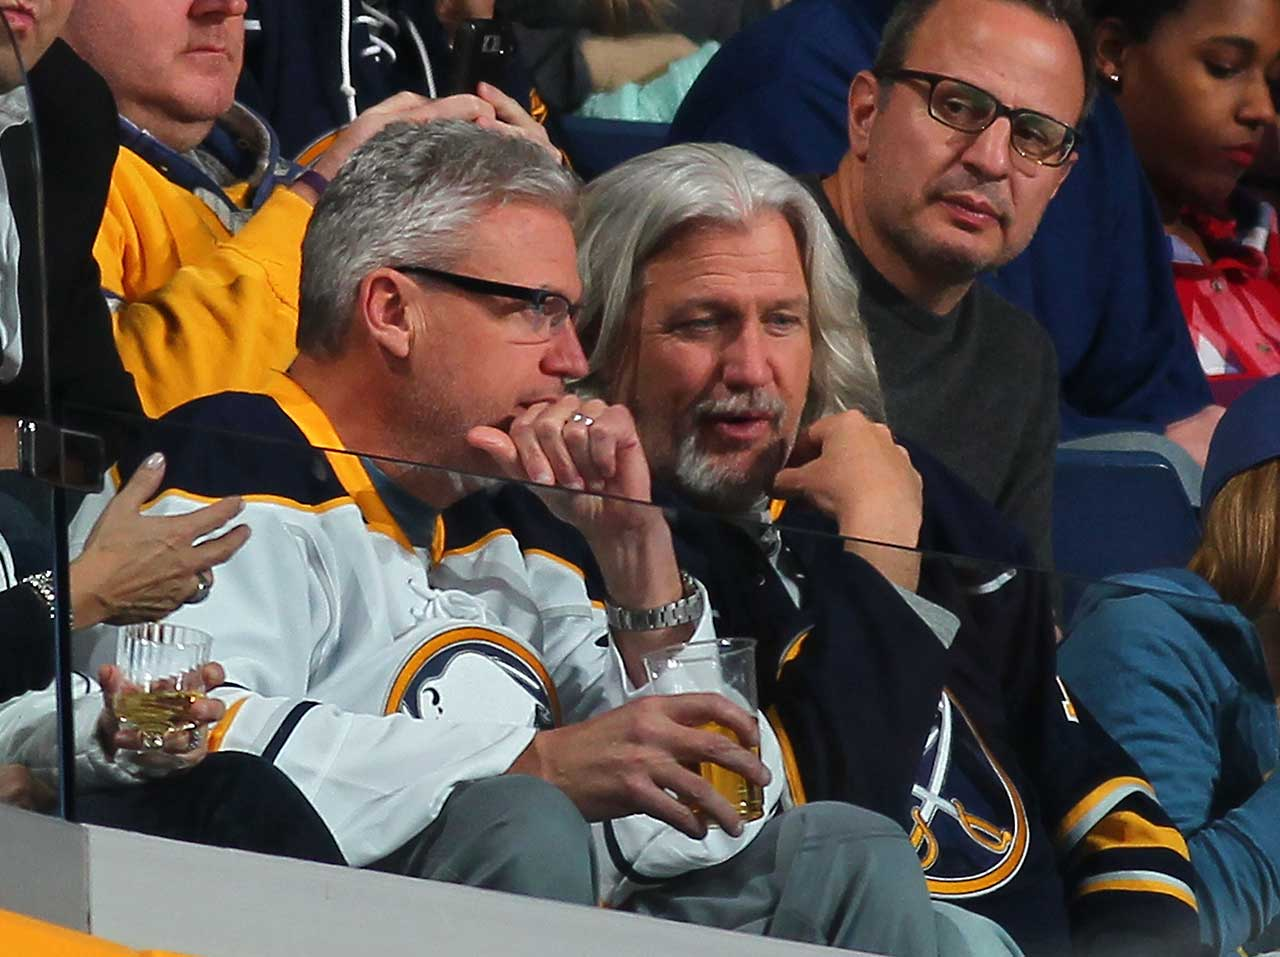 Buffalo Bills head coach Rex Ryan and his brother, Rob, watch the NHL game between the Buffalo Sabres and the Boston Bruins at the First Niagara Center in Buffalo.